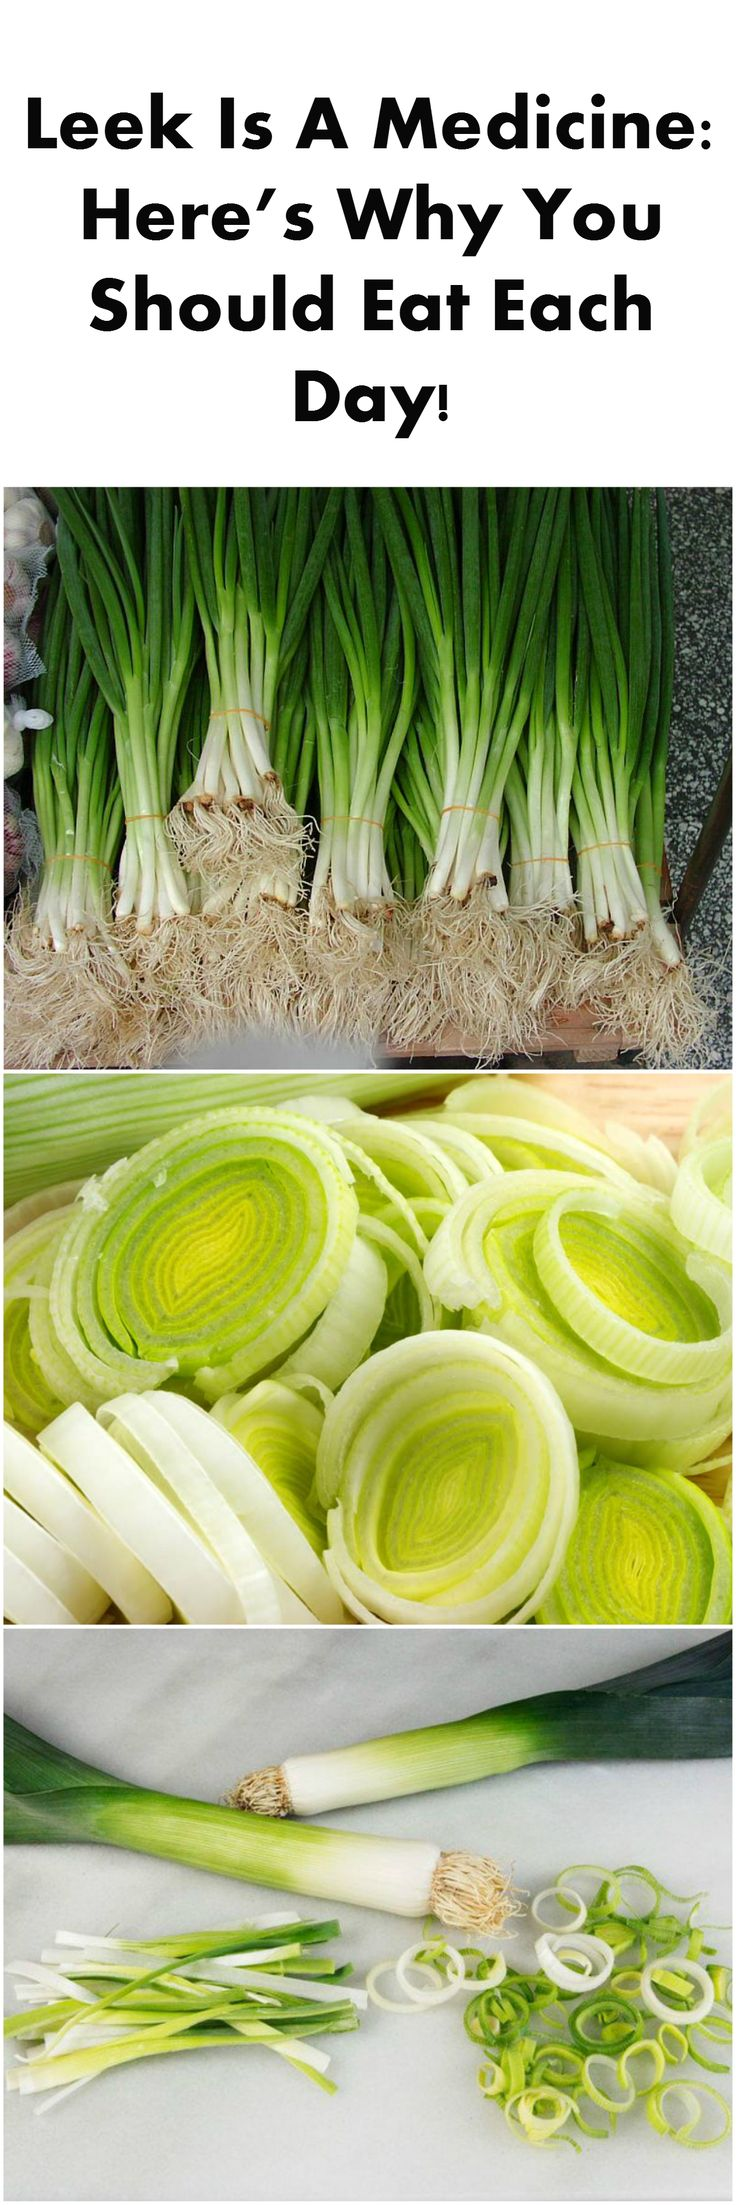 #leek #medicine #plant #healthy #eating #eat #every #day #benefits